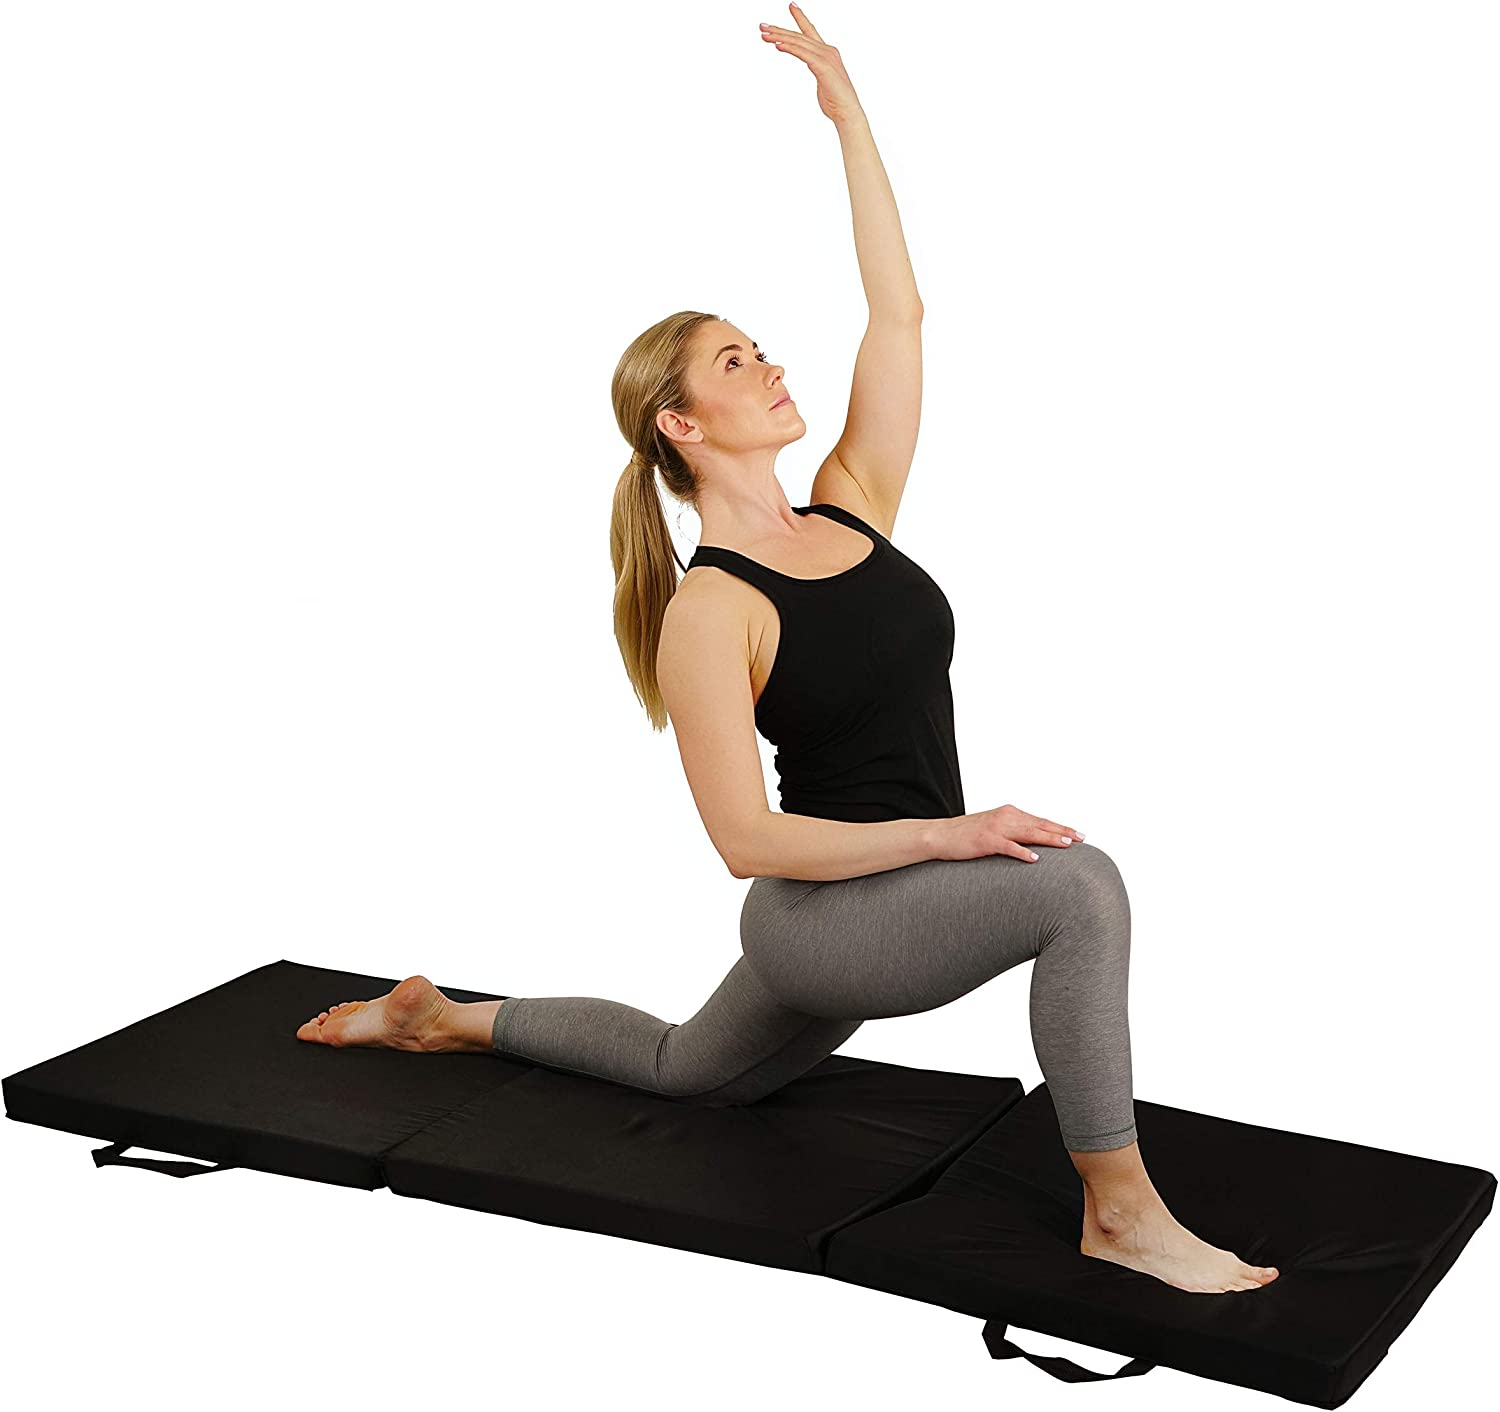 Sunny Health & Fitness Folding Gymnastics Mat - Extra Thick with Carry Handles - for Exercise, Yoga, Fitness, Aerobics, Martial Arts, Gym Mat, Cardio, Tumbling (6 FT x 2 FT) : Gymnastics Mat : Sports & Outdoors